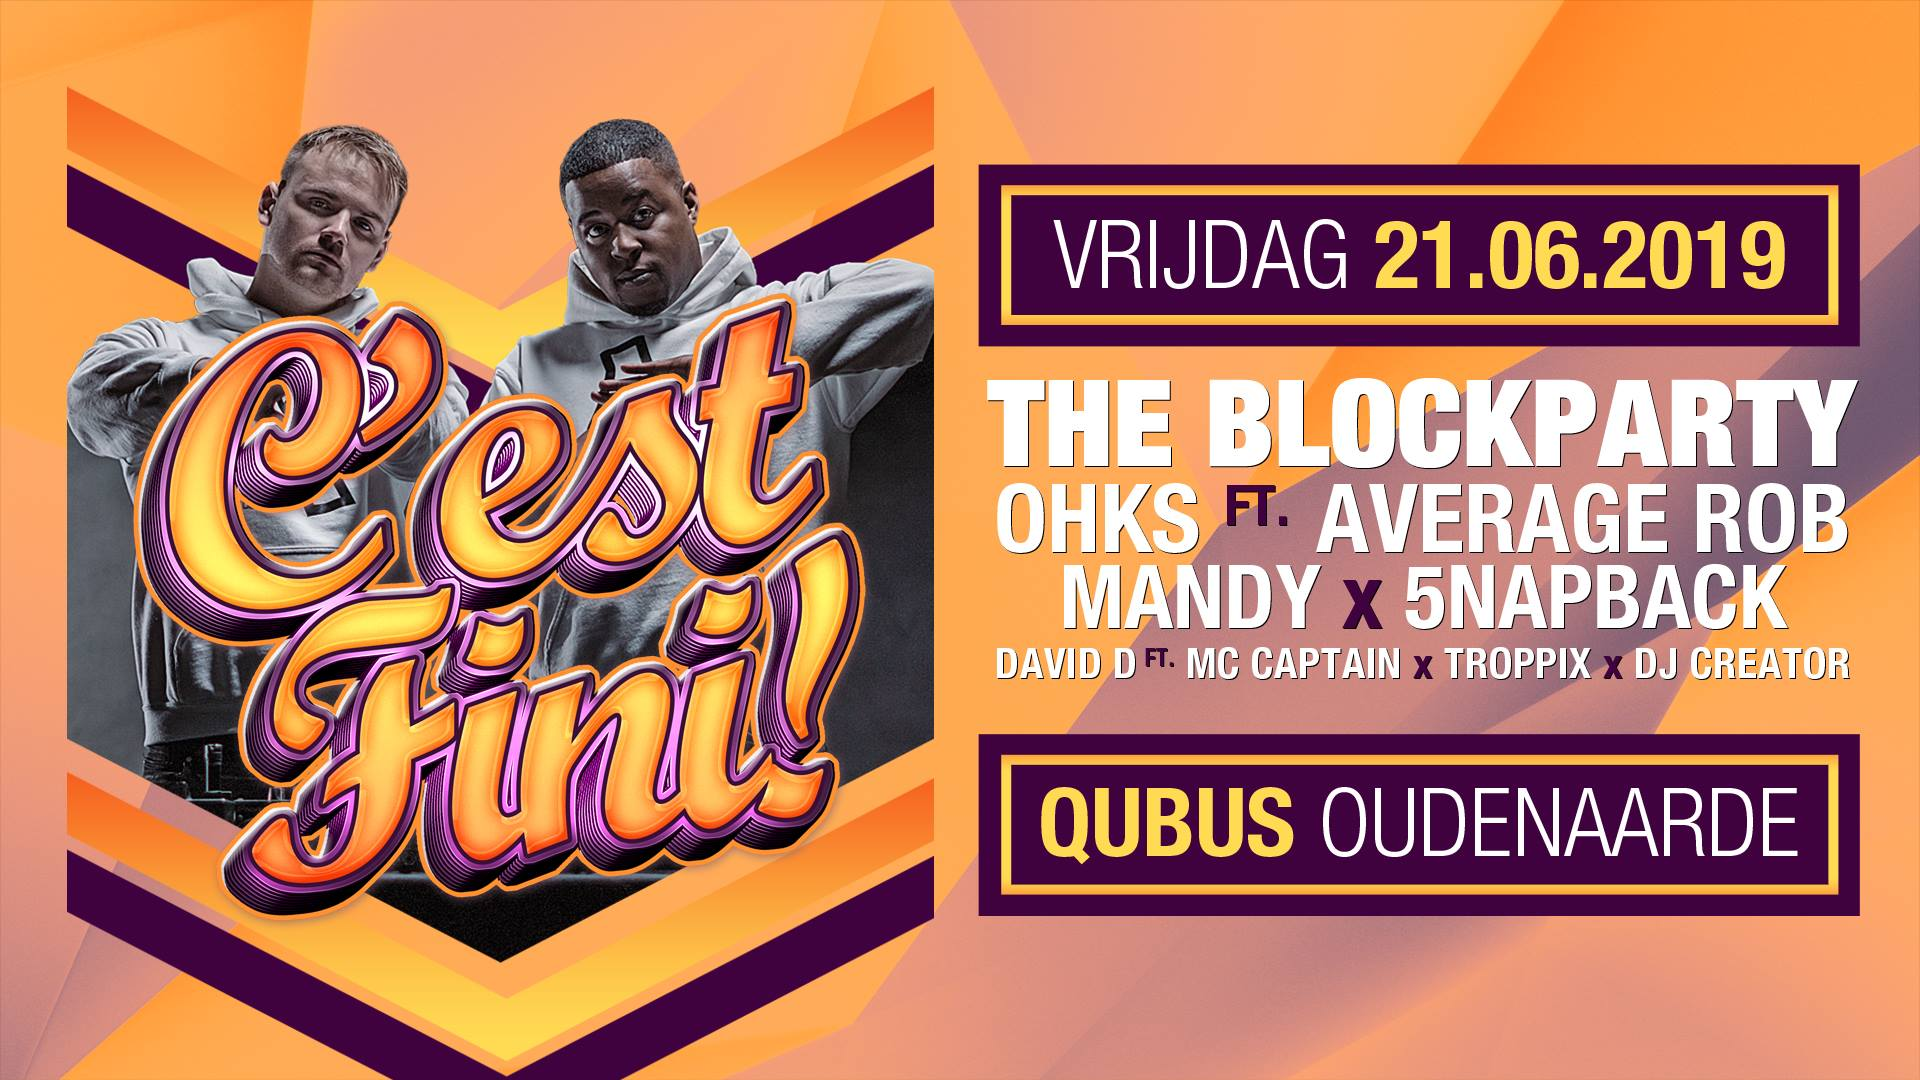 Cest-Fini-w-The-Blockparty-NL